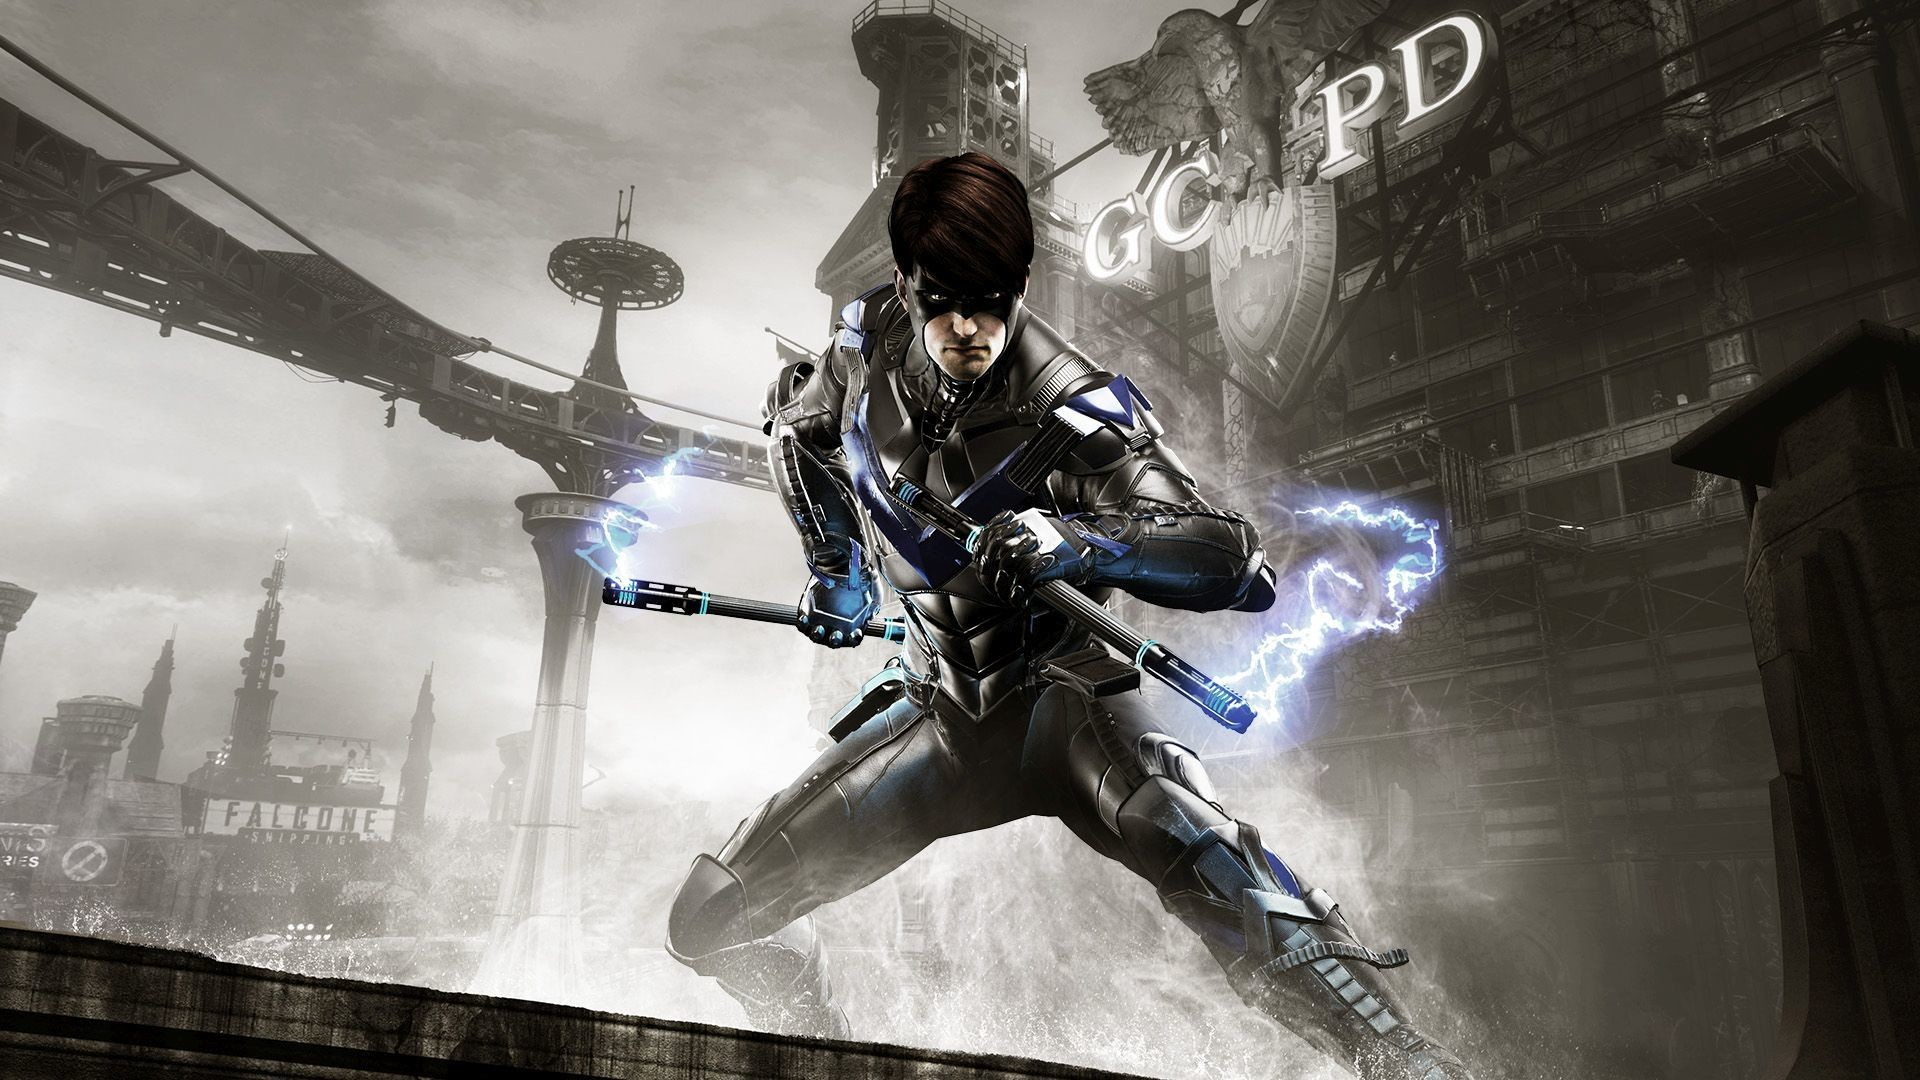 1920x1080 Batman Arkham Knight Nightwing